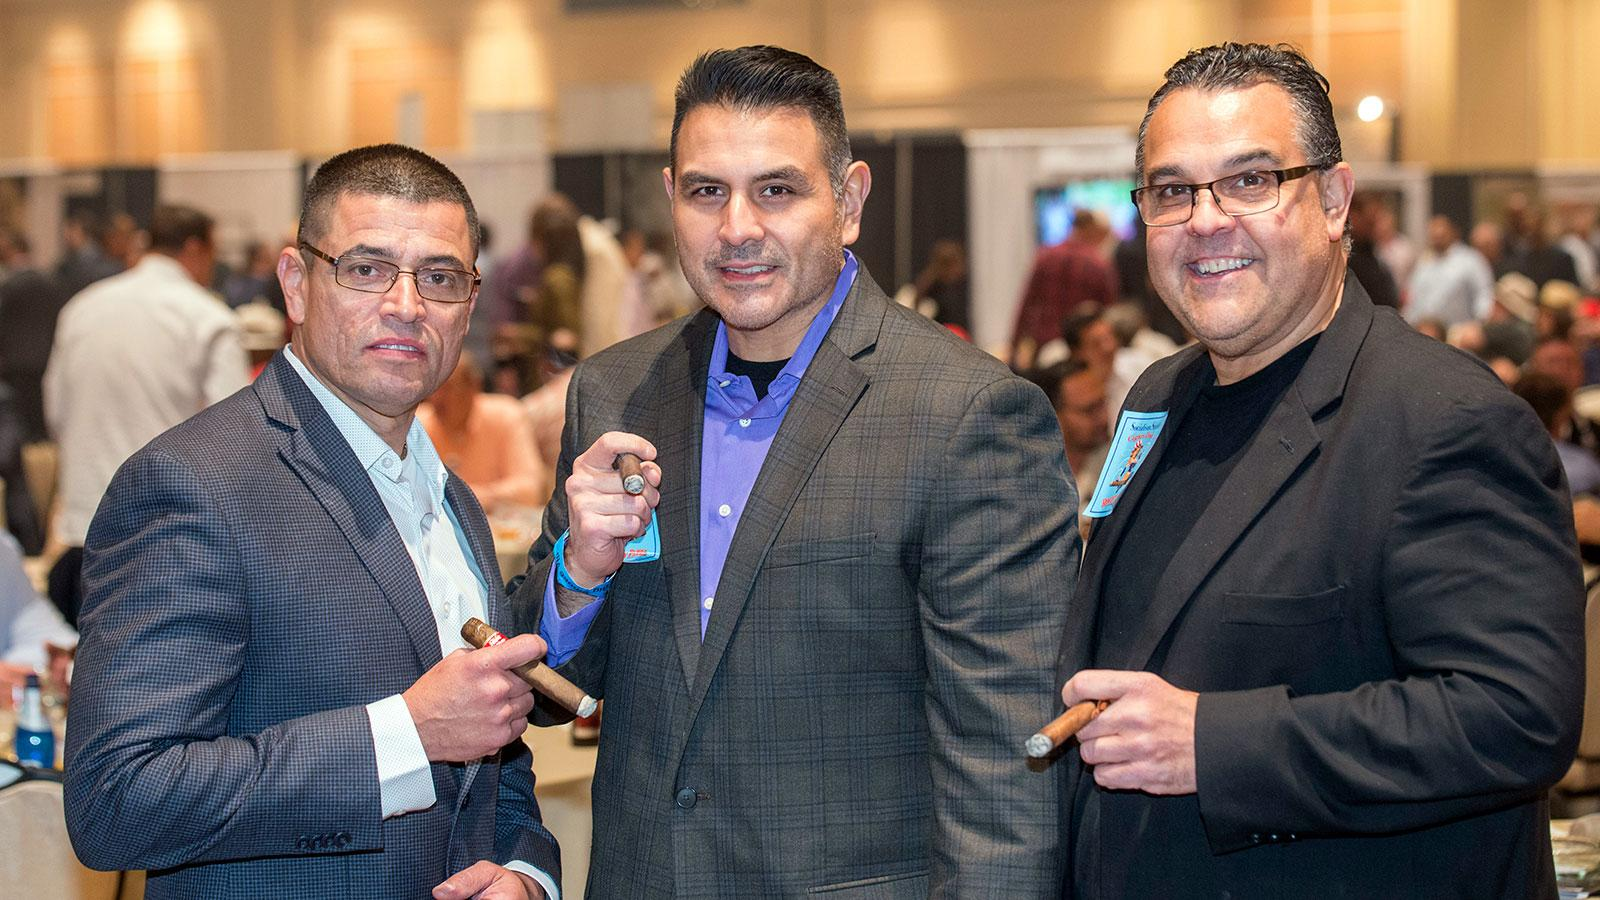 Chicago Police Officers Ralph Lopez, Art Torres and Eddie Pacheco enjoying fine smokes.